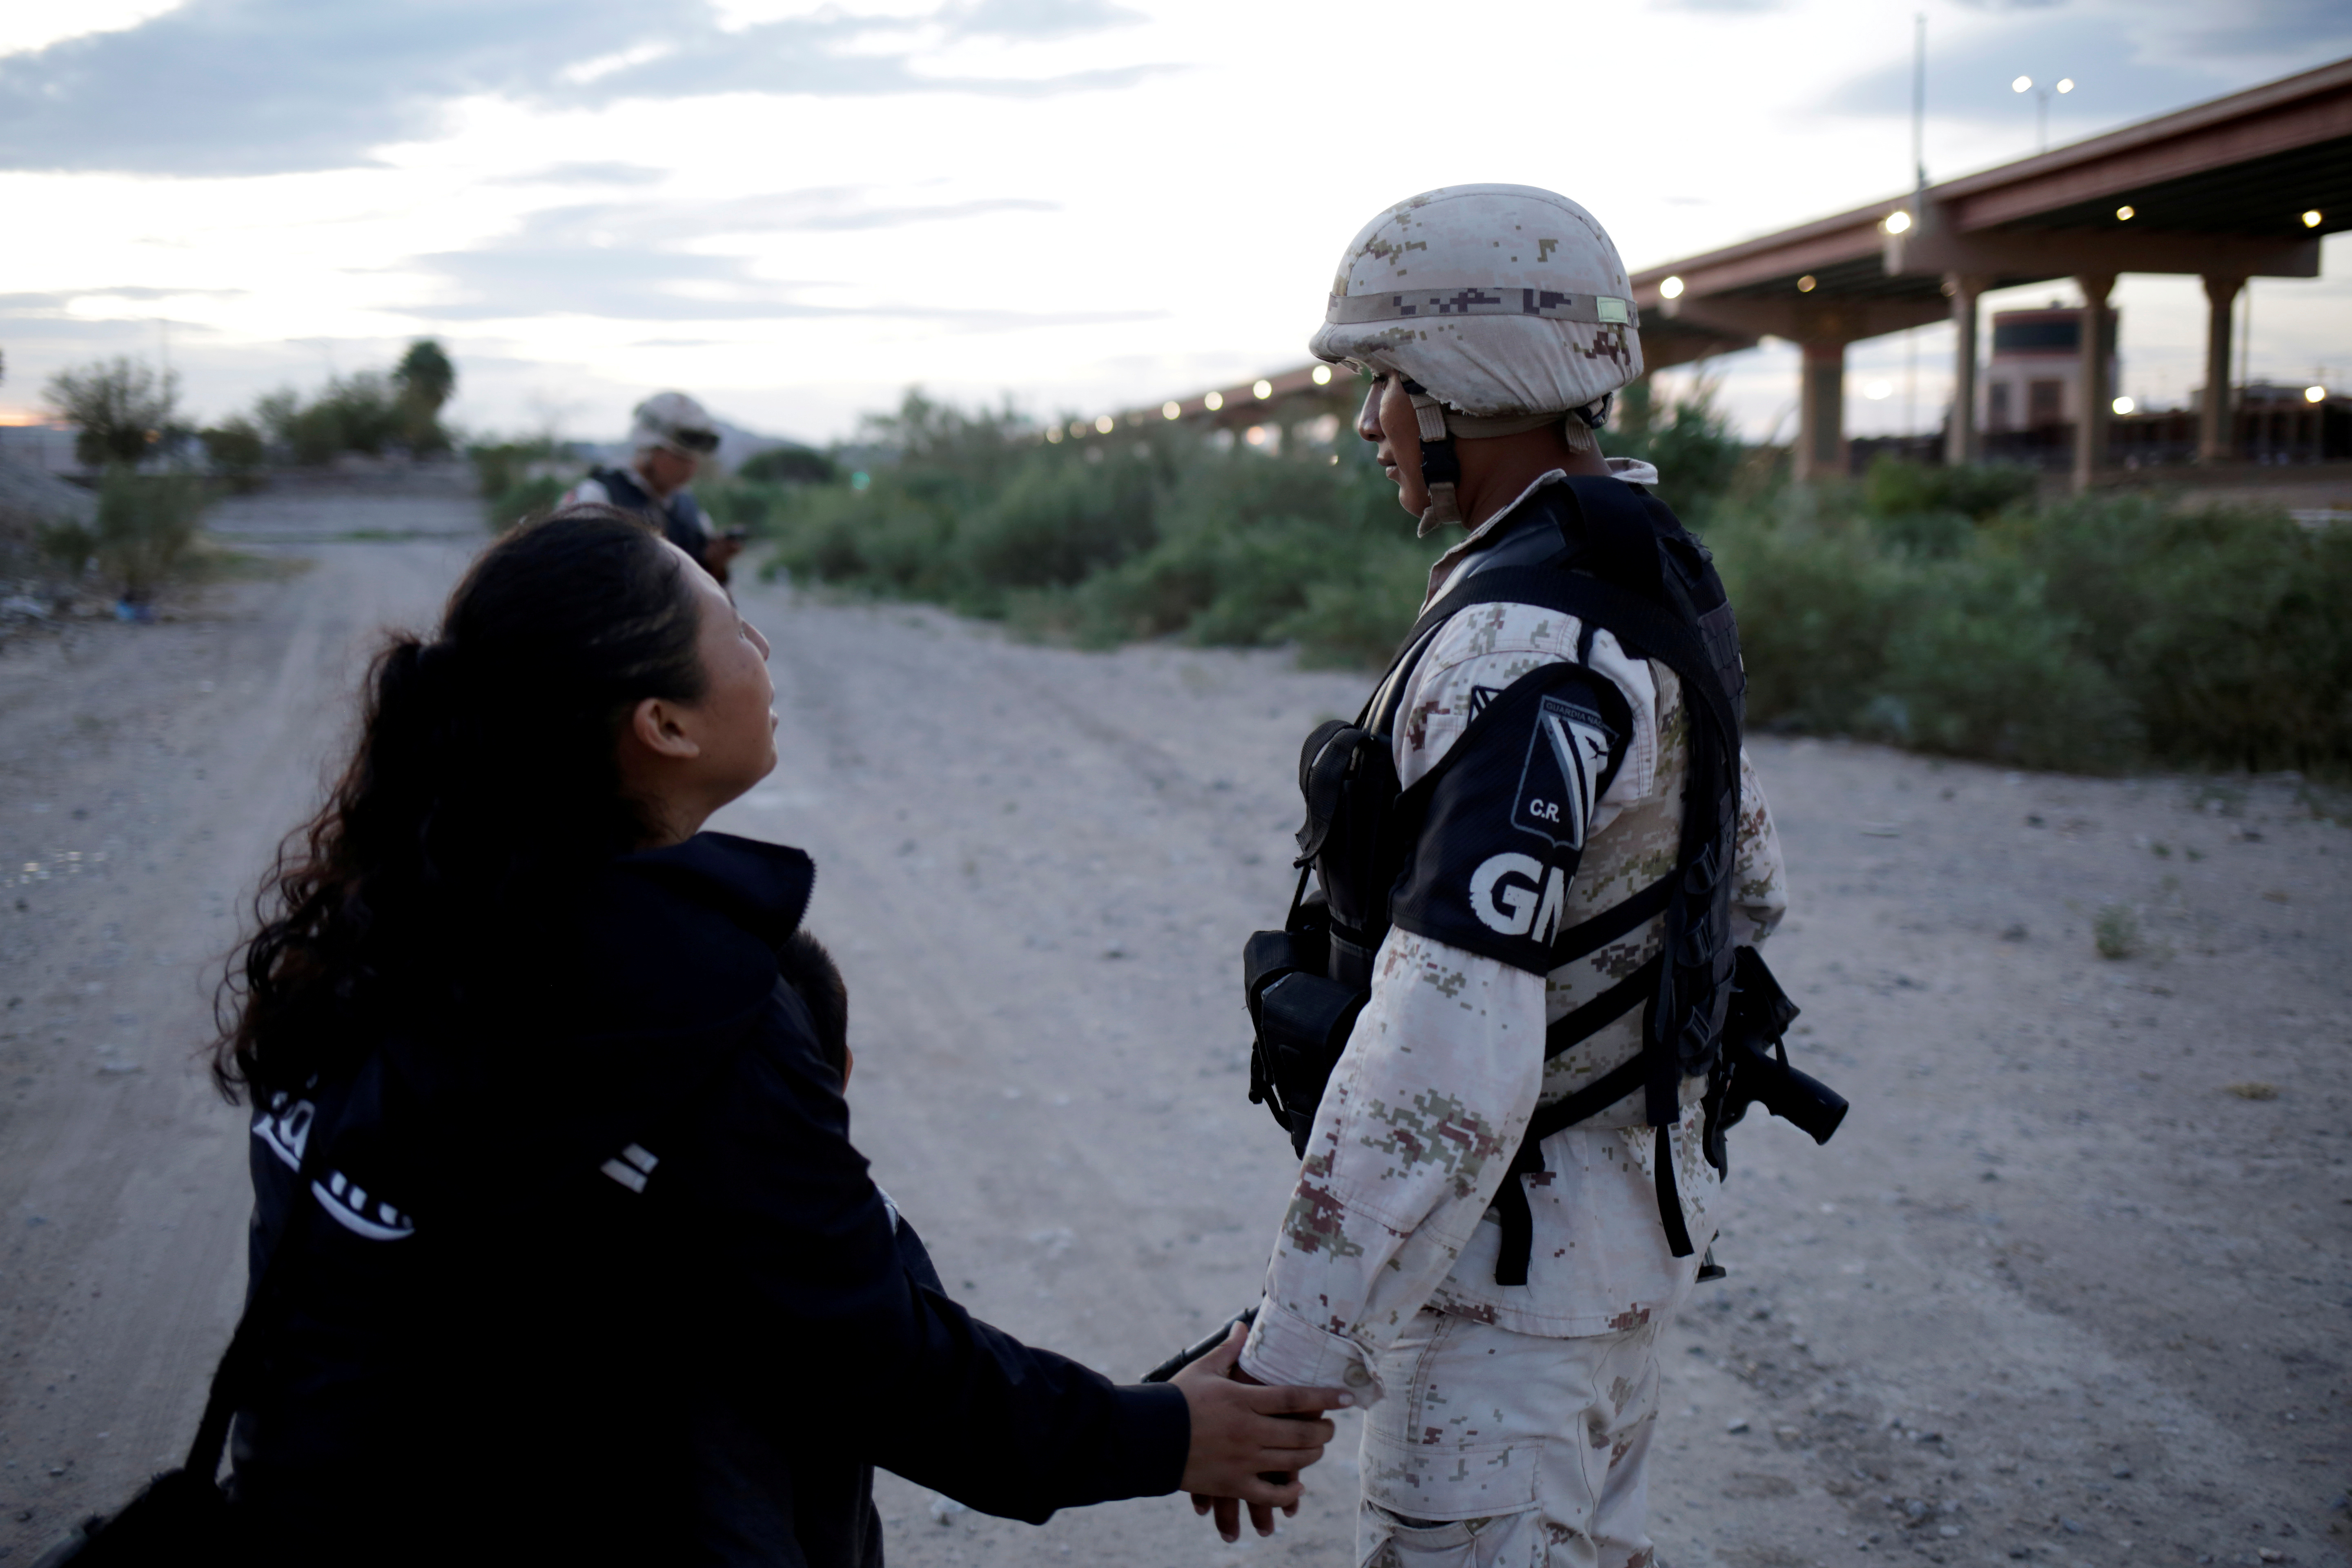 Guatemalan migrant Ledy Perez asks a member of the Mexican National Guard to let her cross with her son Anthony (not pictured) into the United States, as seen from Ciudad Juarez, Mexico July 22, 2019. REUTERS/Jose Luis Gonzalez